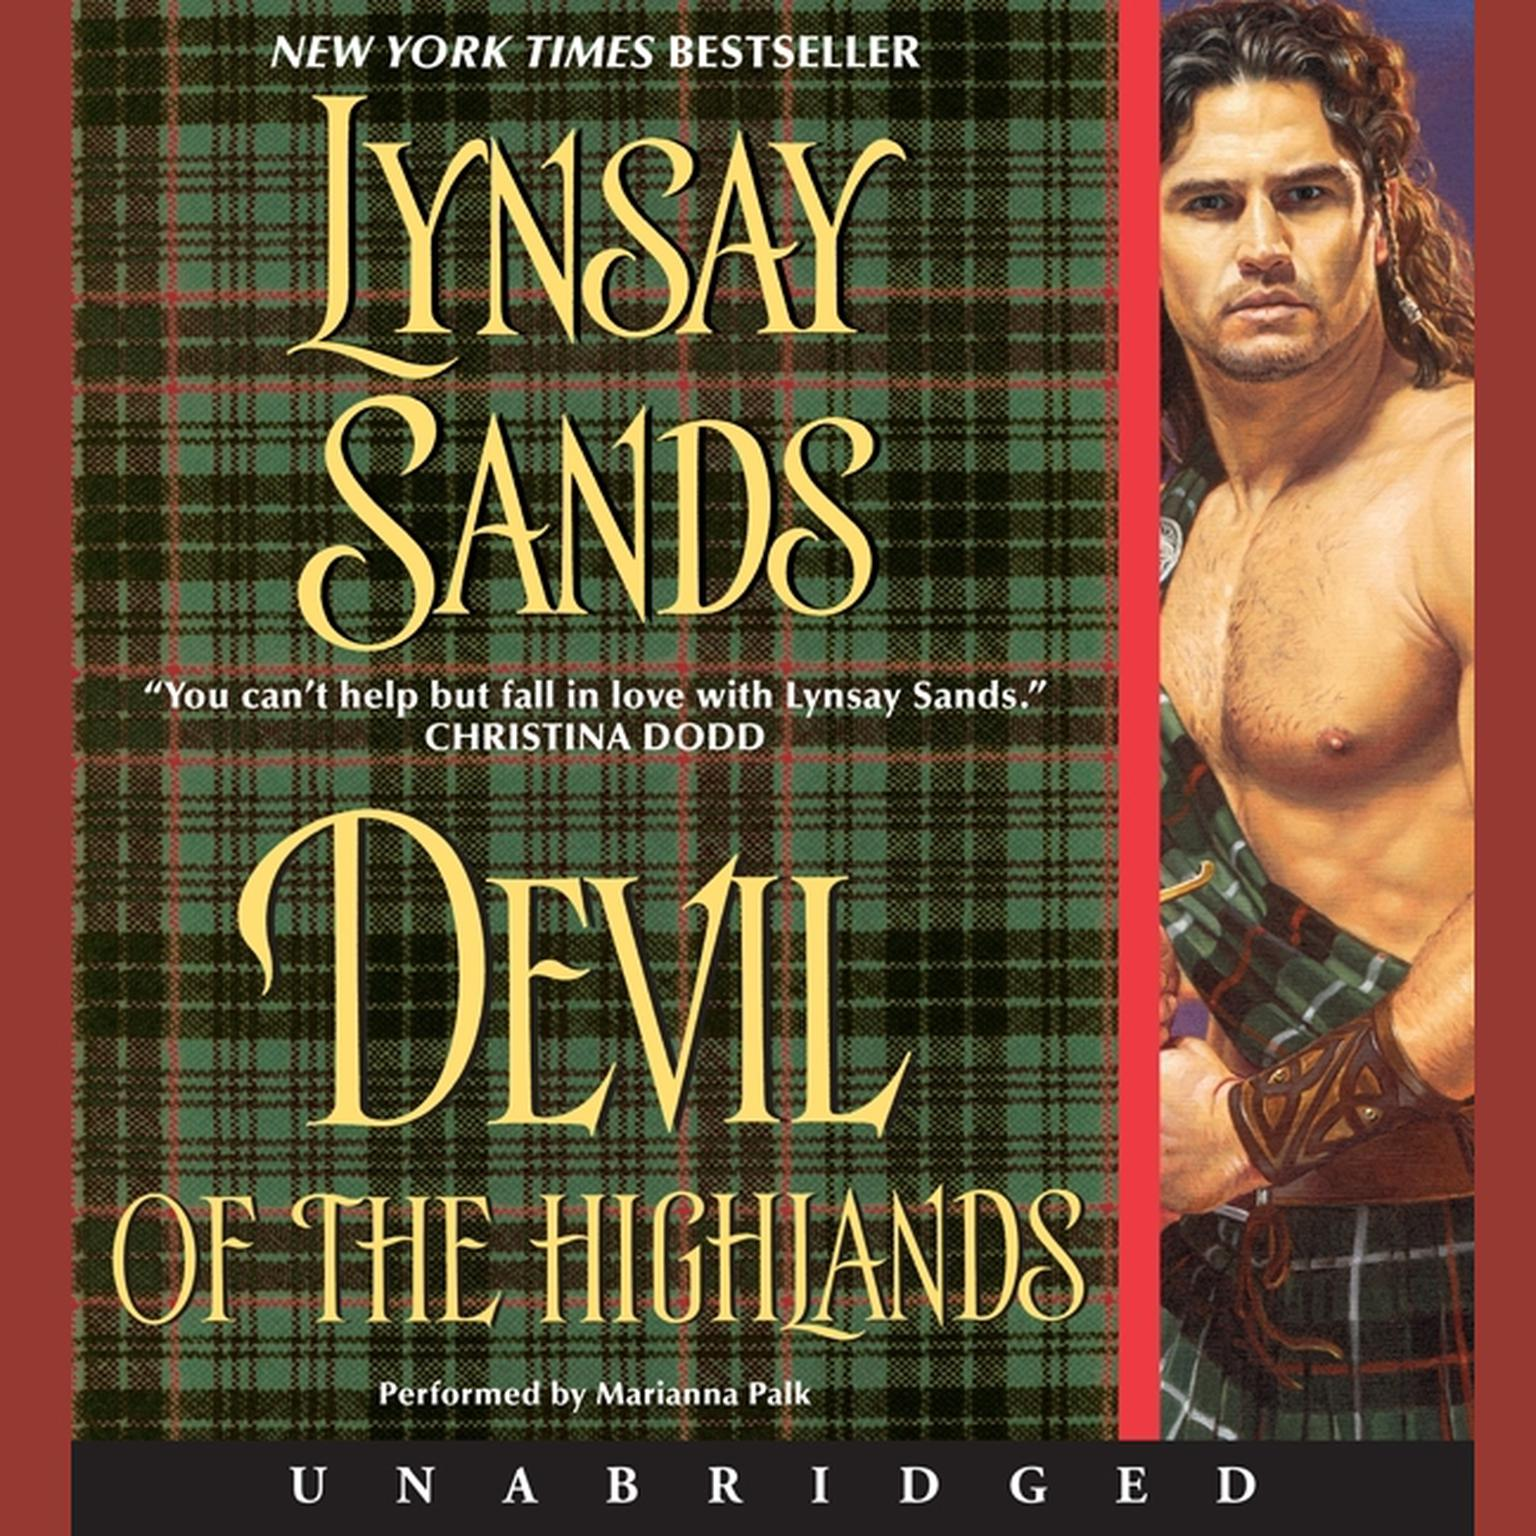 Printable Devil of the Highlands Audiobook Cover Art